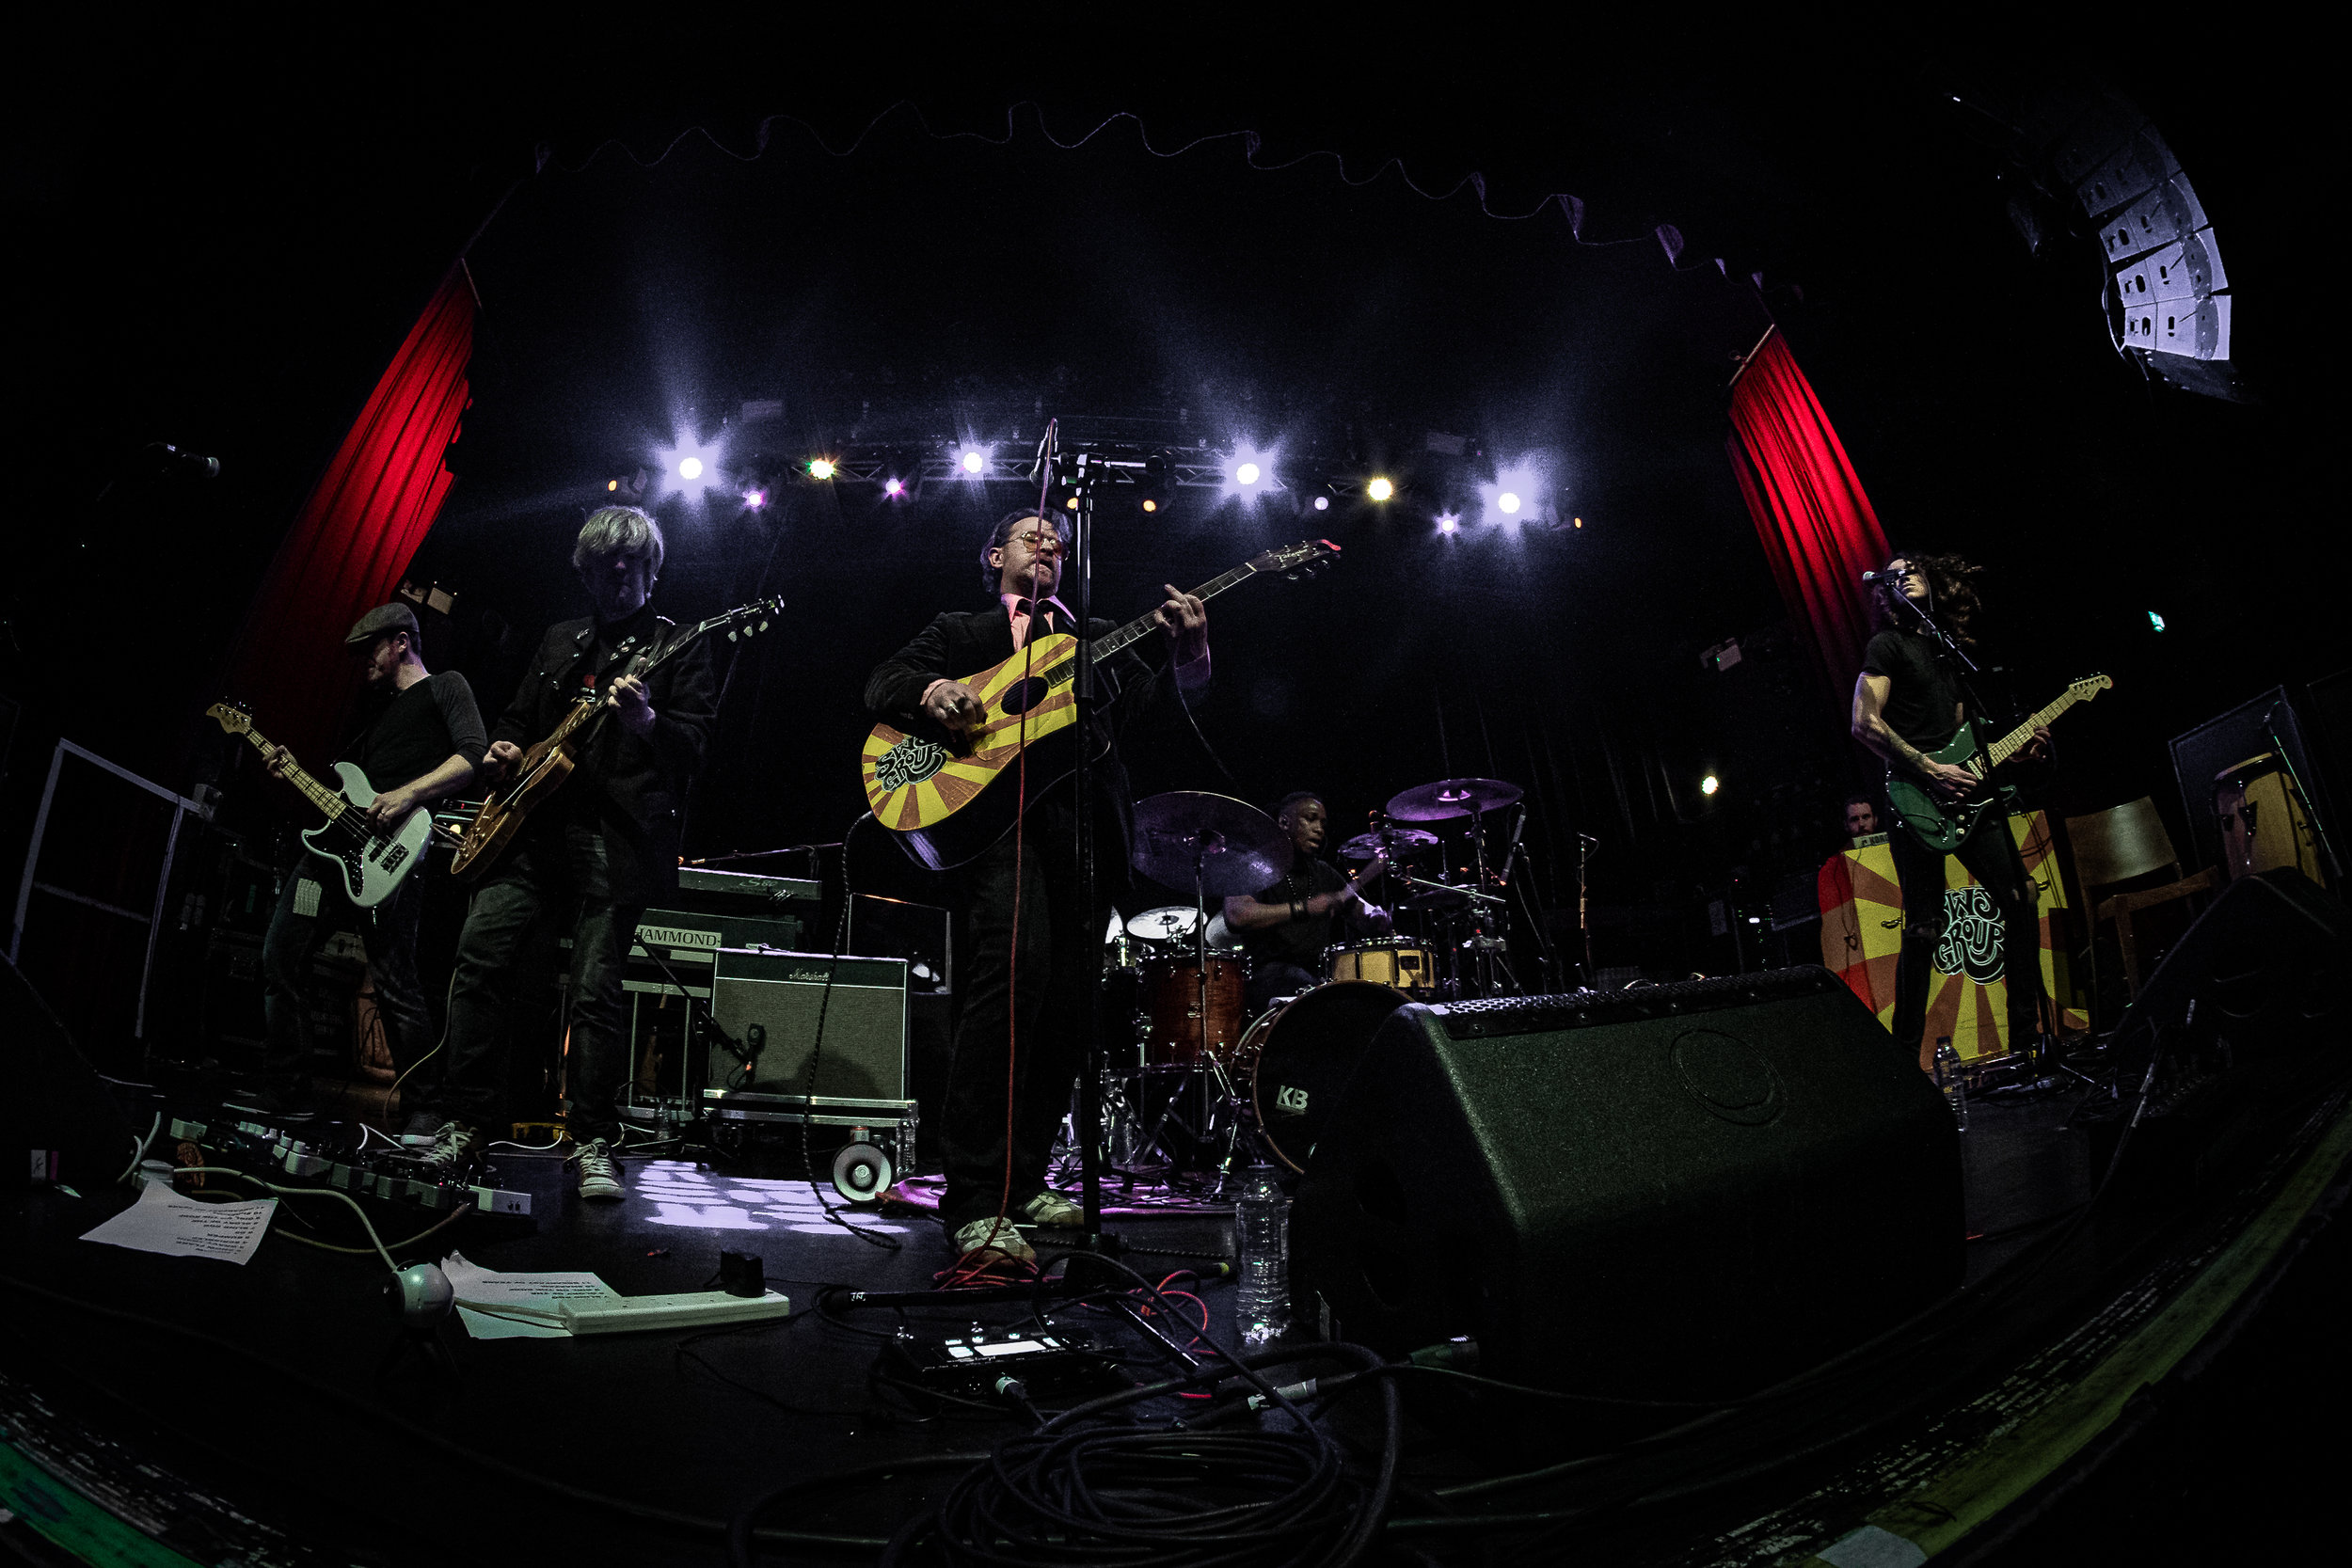 The SWJ Group - live at O2 Ritz Manchester 29/05/19